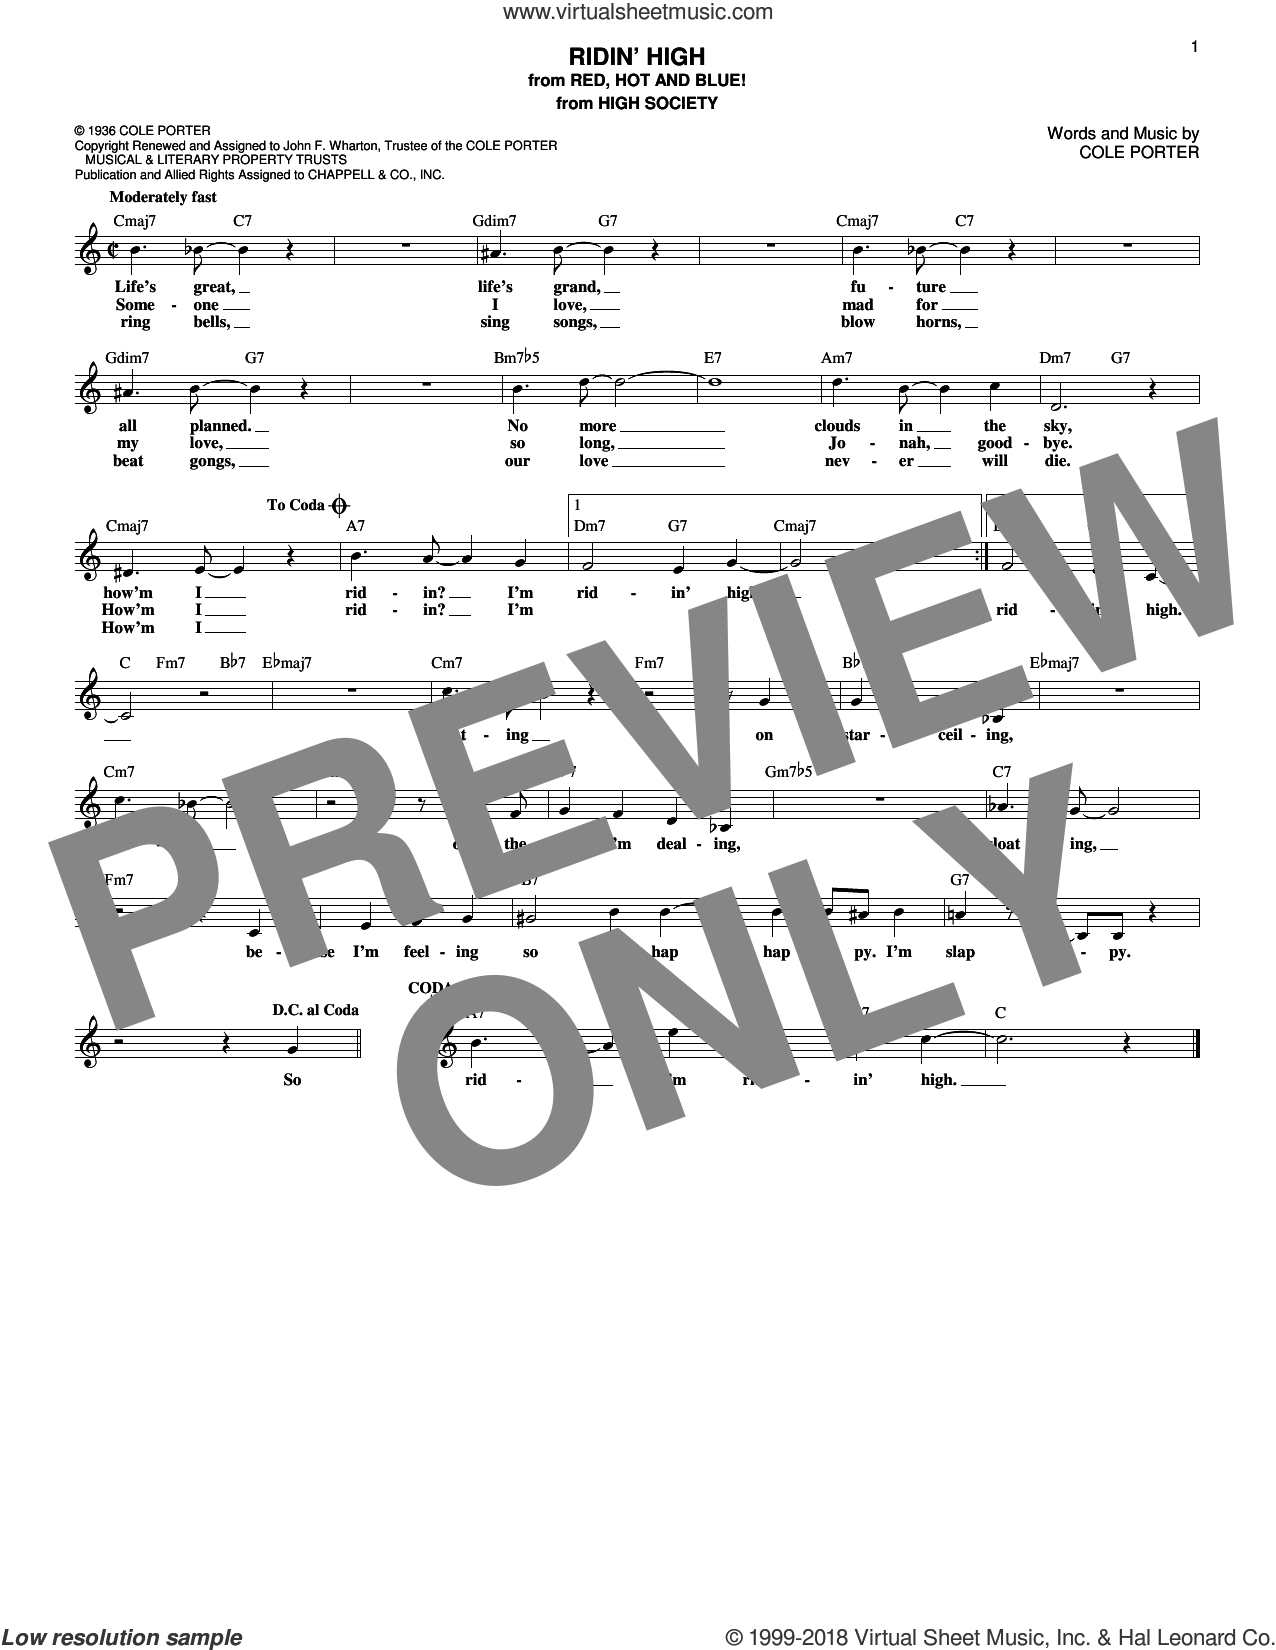 Ridin' High sheet music for voice and other instruments (fake book) by Cole Porter and Benny Goodman, intermediate skill level